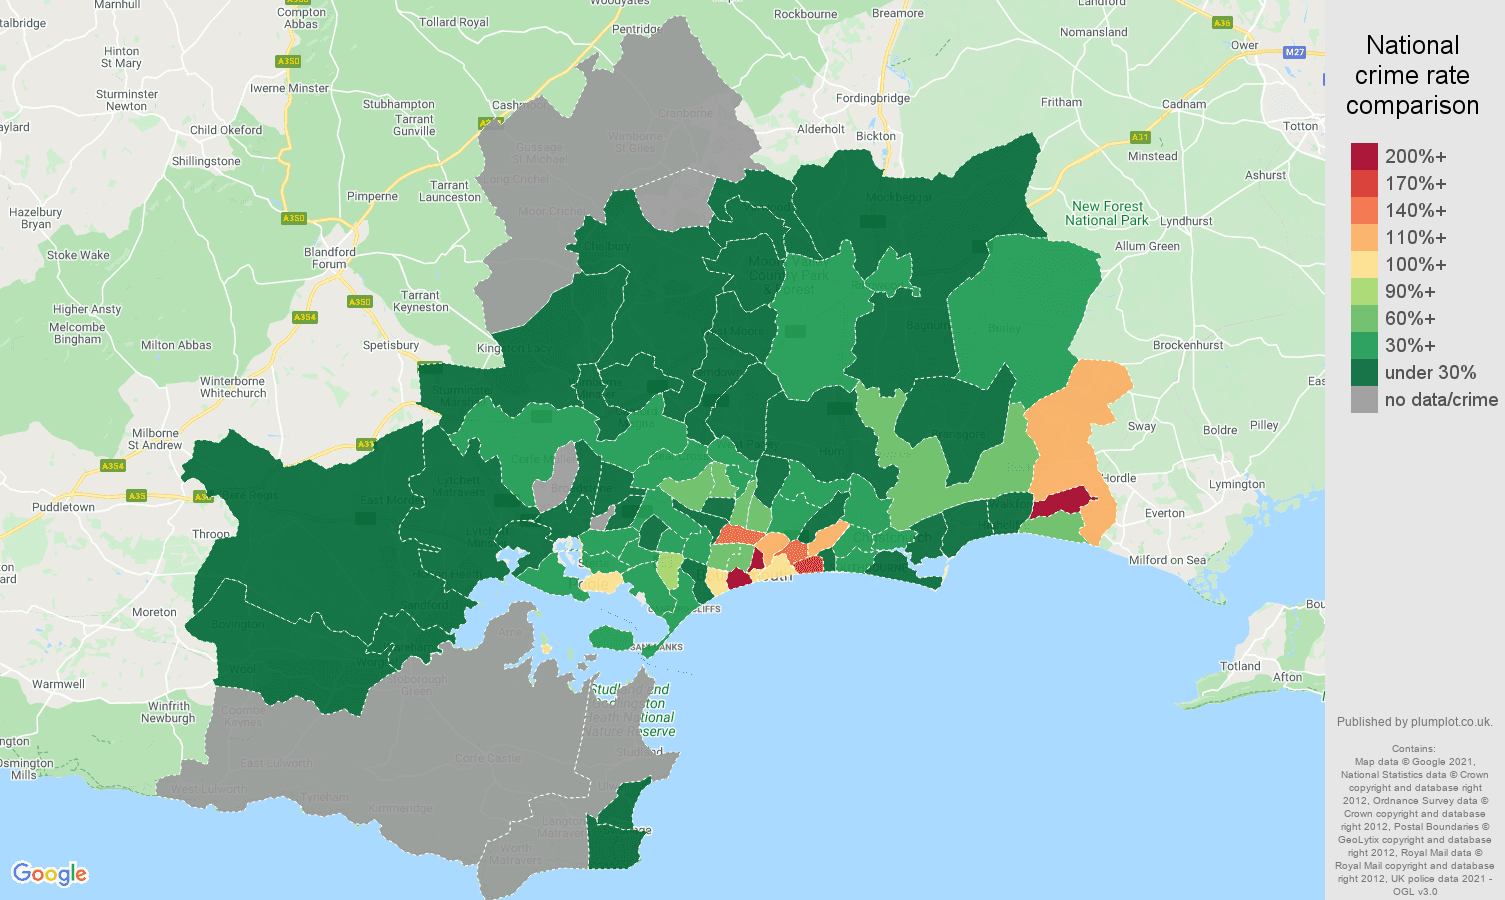 Bournemouth drugs crime rate comparison map